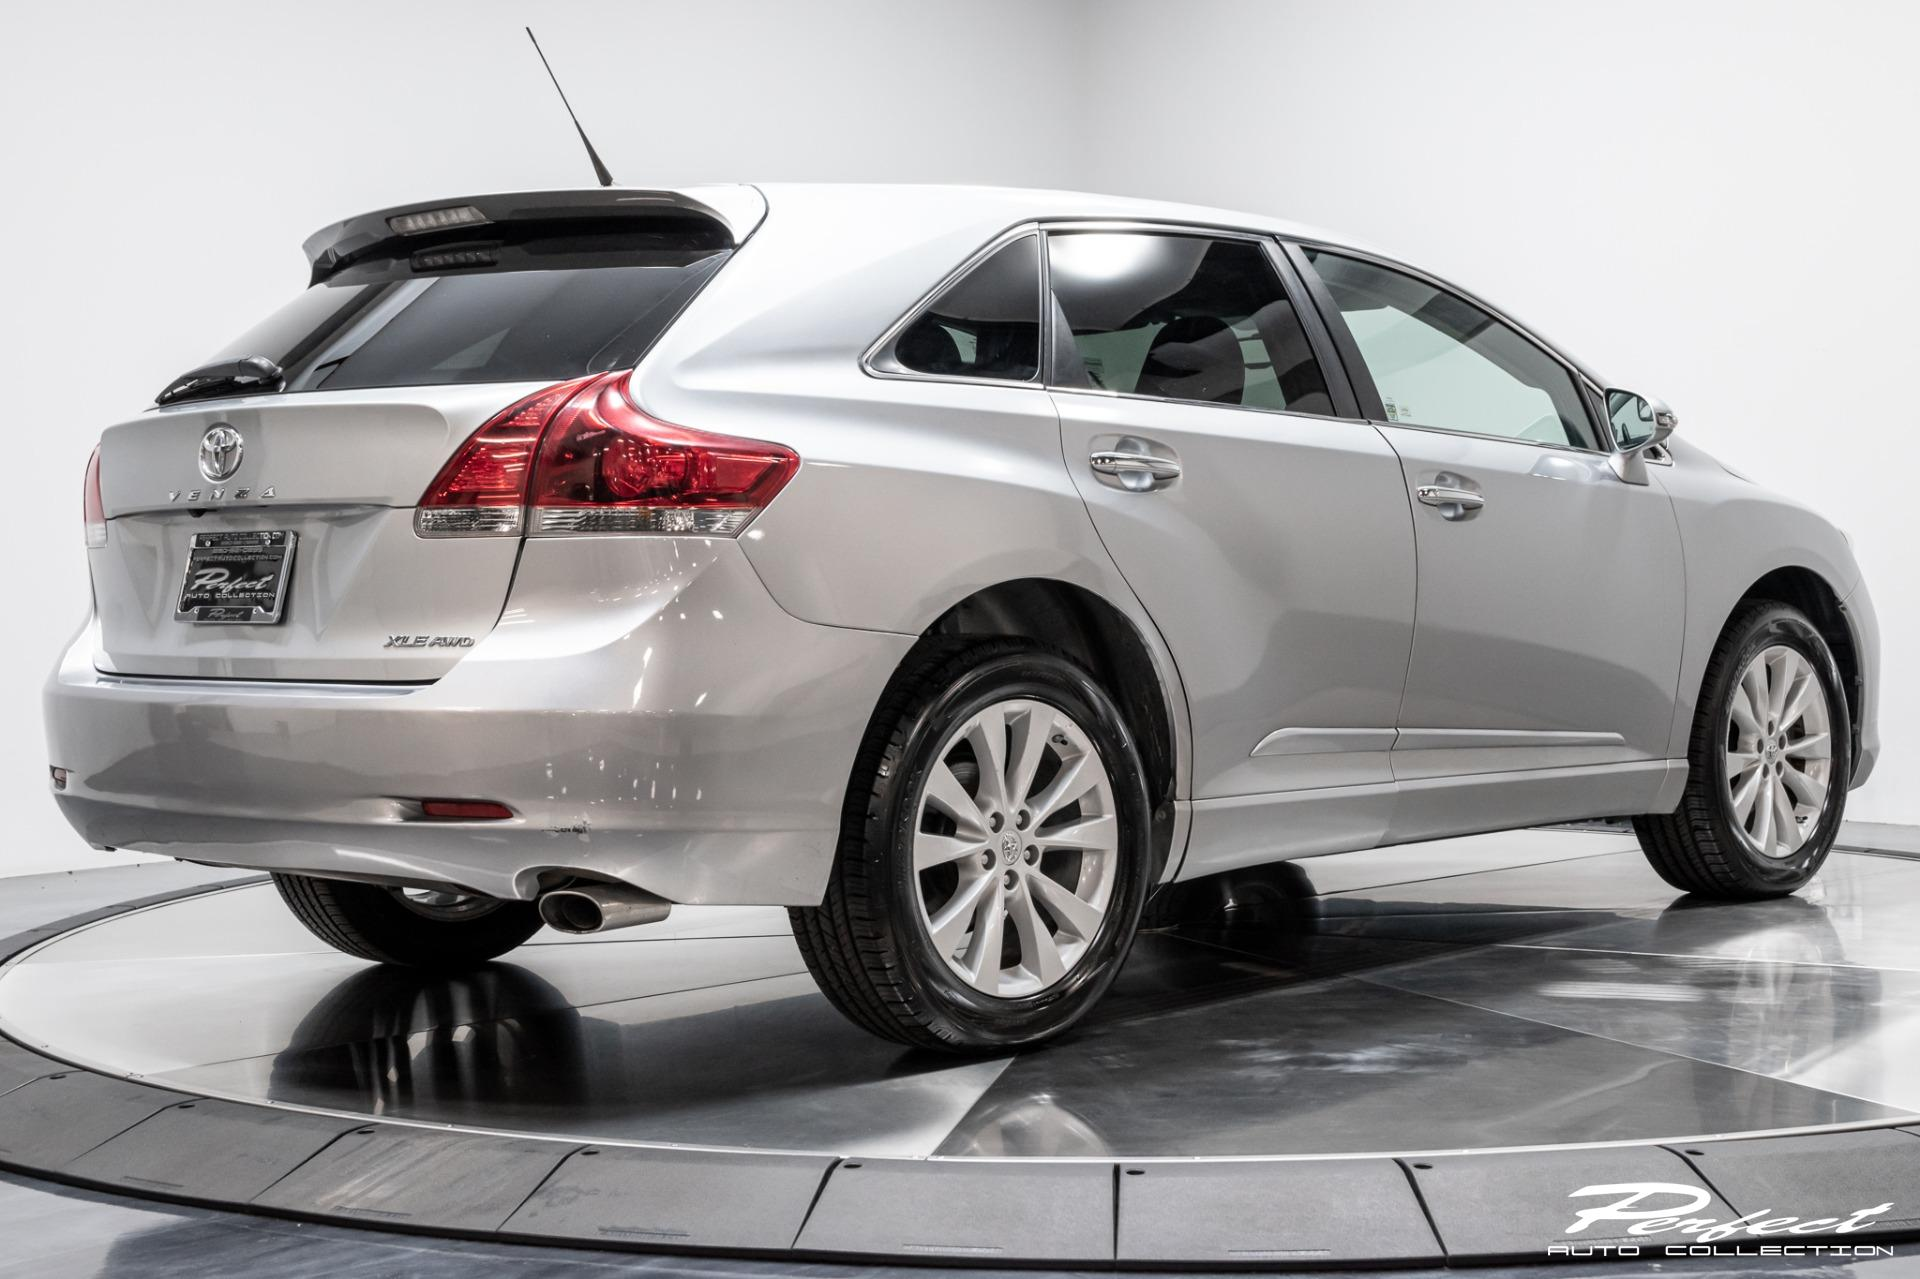 Used 2015 Toyota Venza XLE for sale Sold at Perfect Auto Collection in Akron OH 44310 4